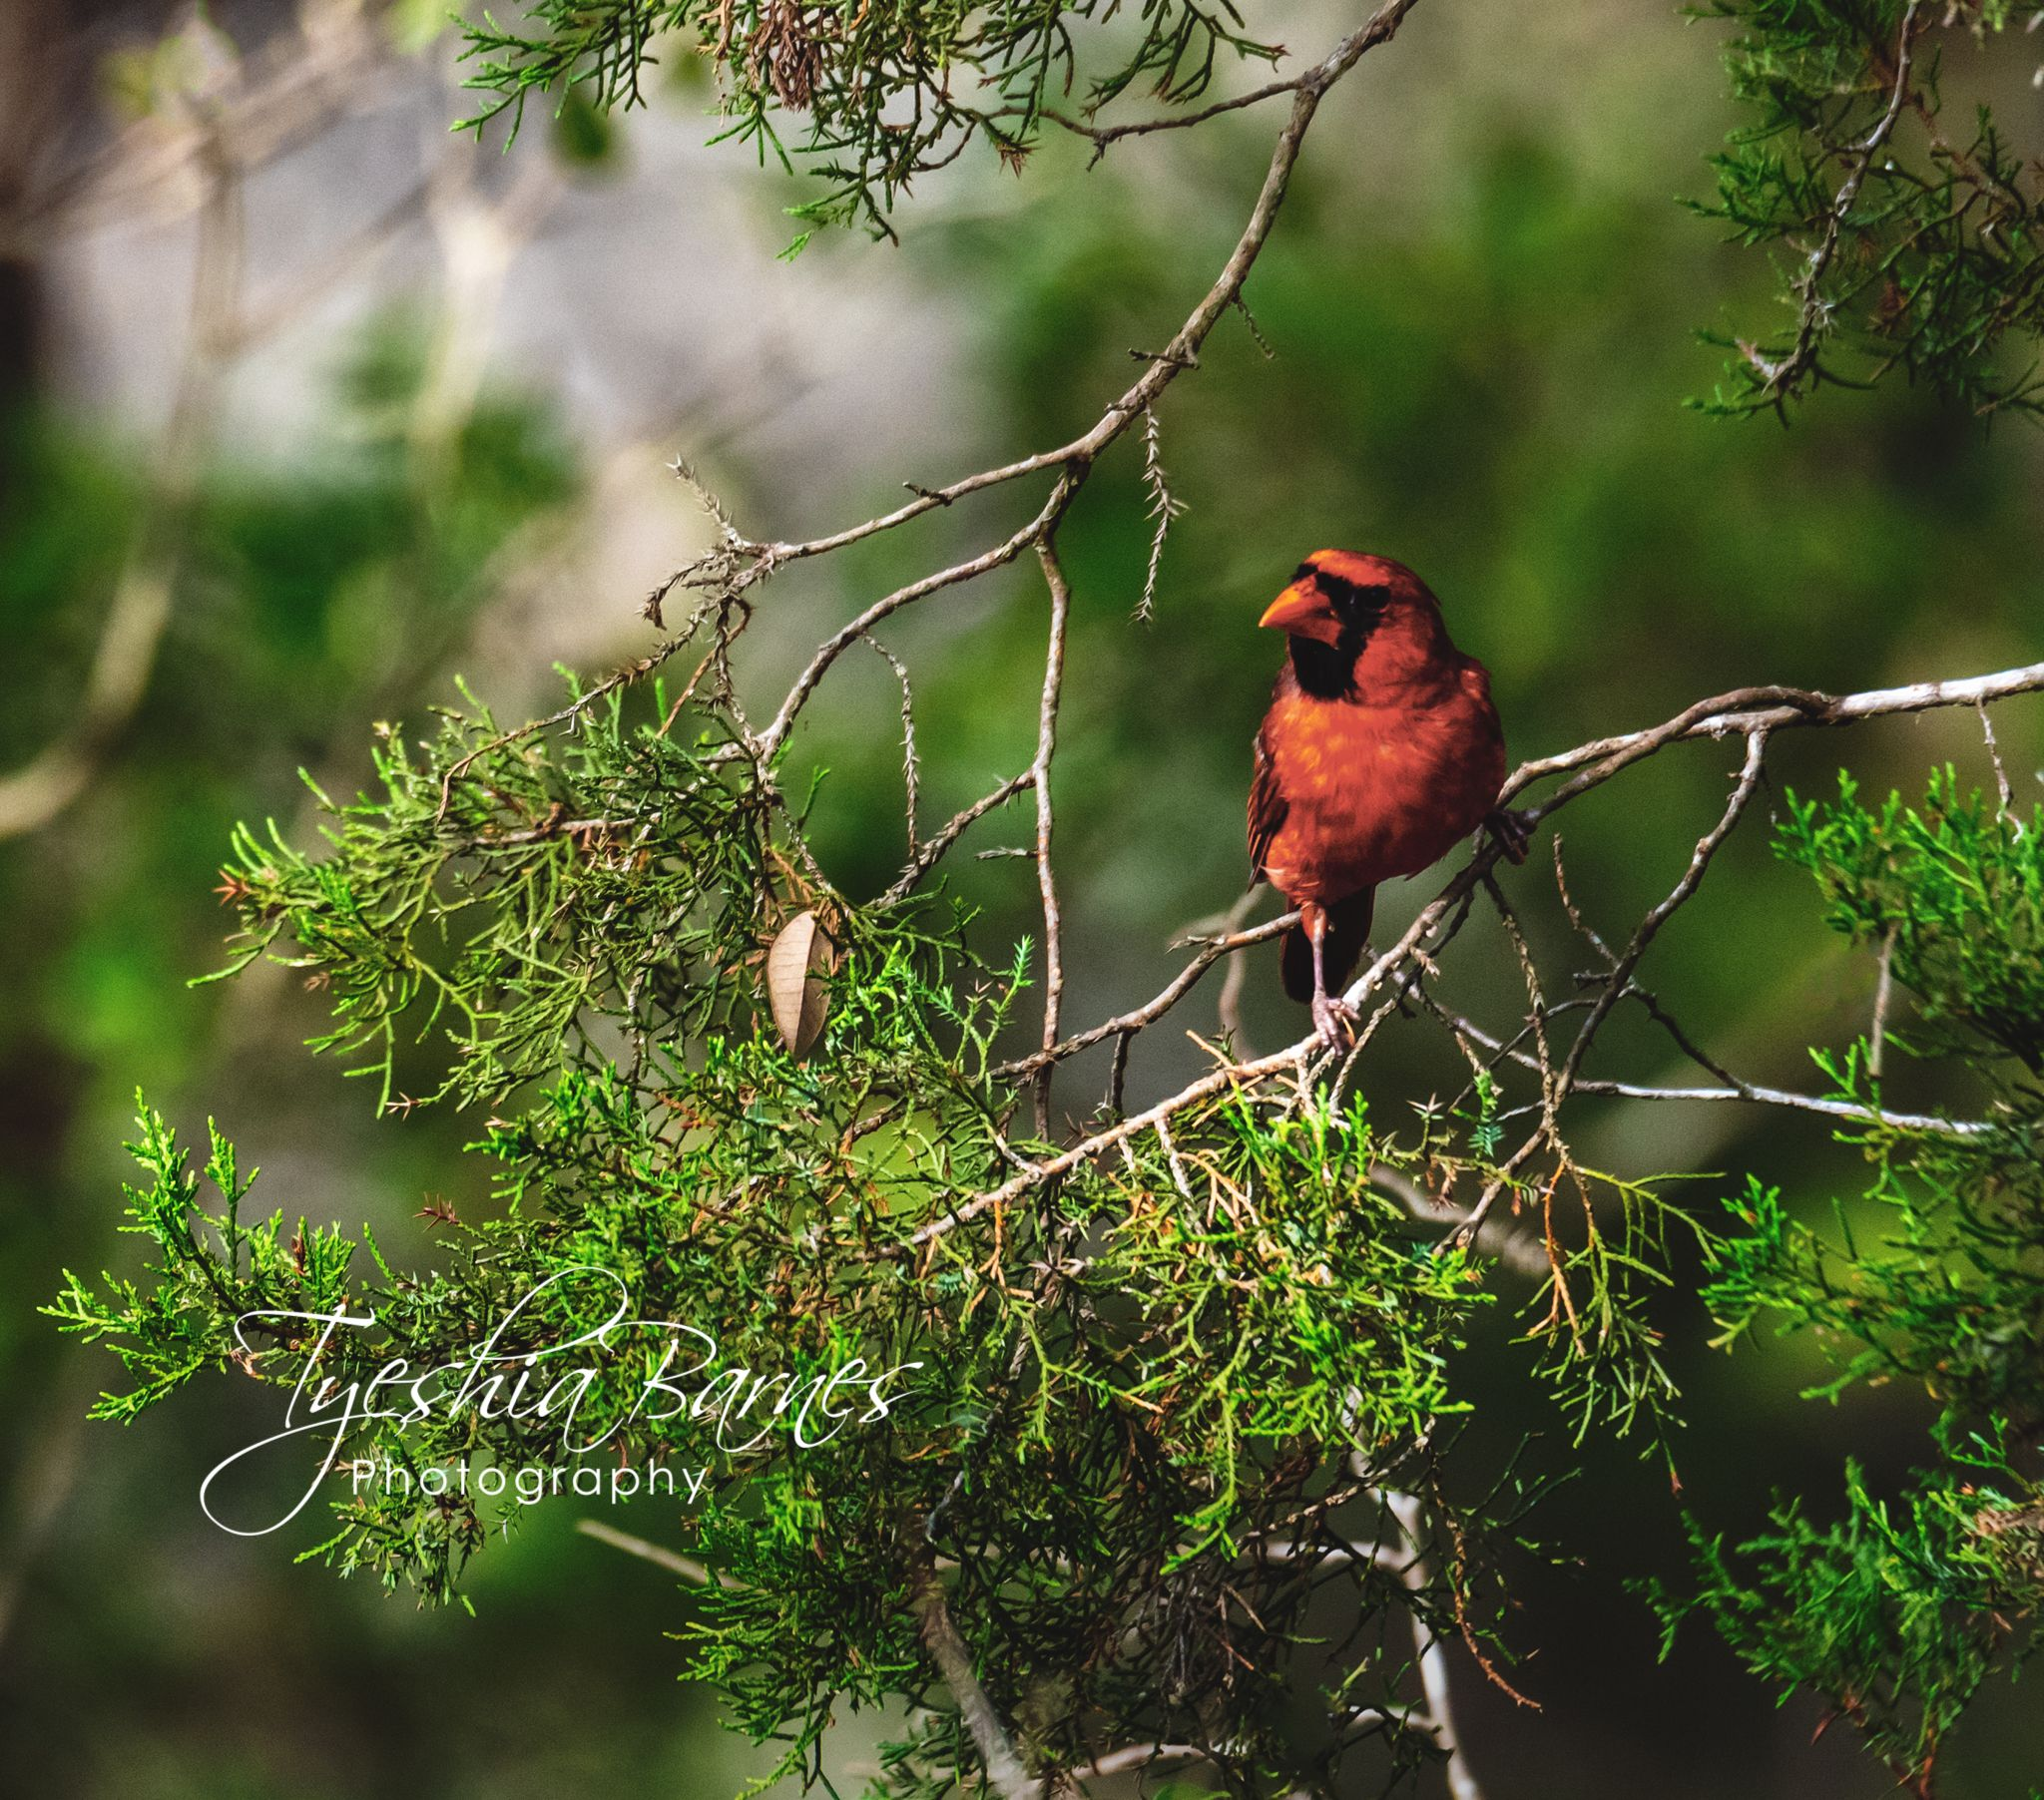 Open your mind to the possibilities of unity #naturephotography #blacklivesmatter #travel #travelphotographer #nature #landscape #commercialphotography #photographylover #photographylovers #photographylife #fineart #wildlife #cardinals #birds